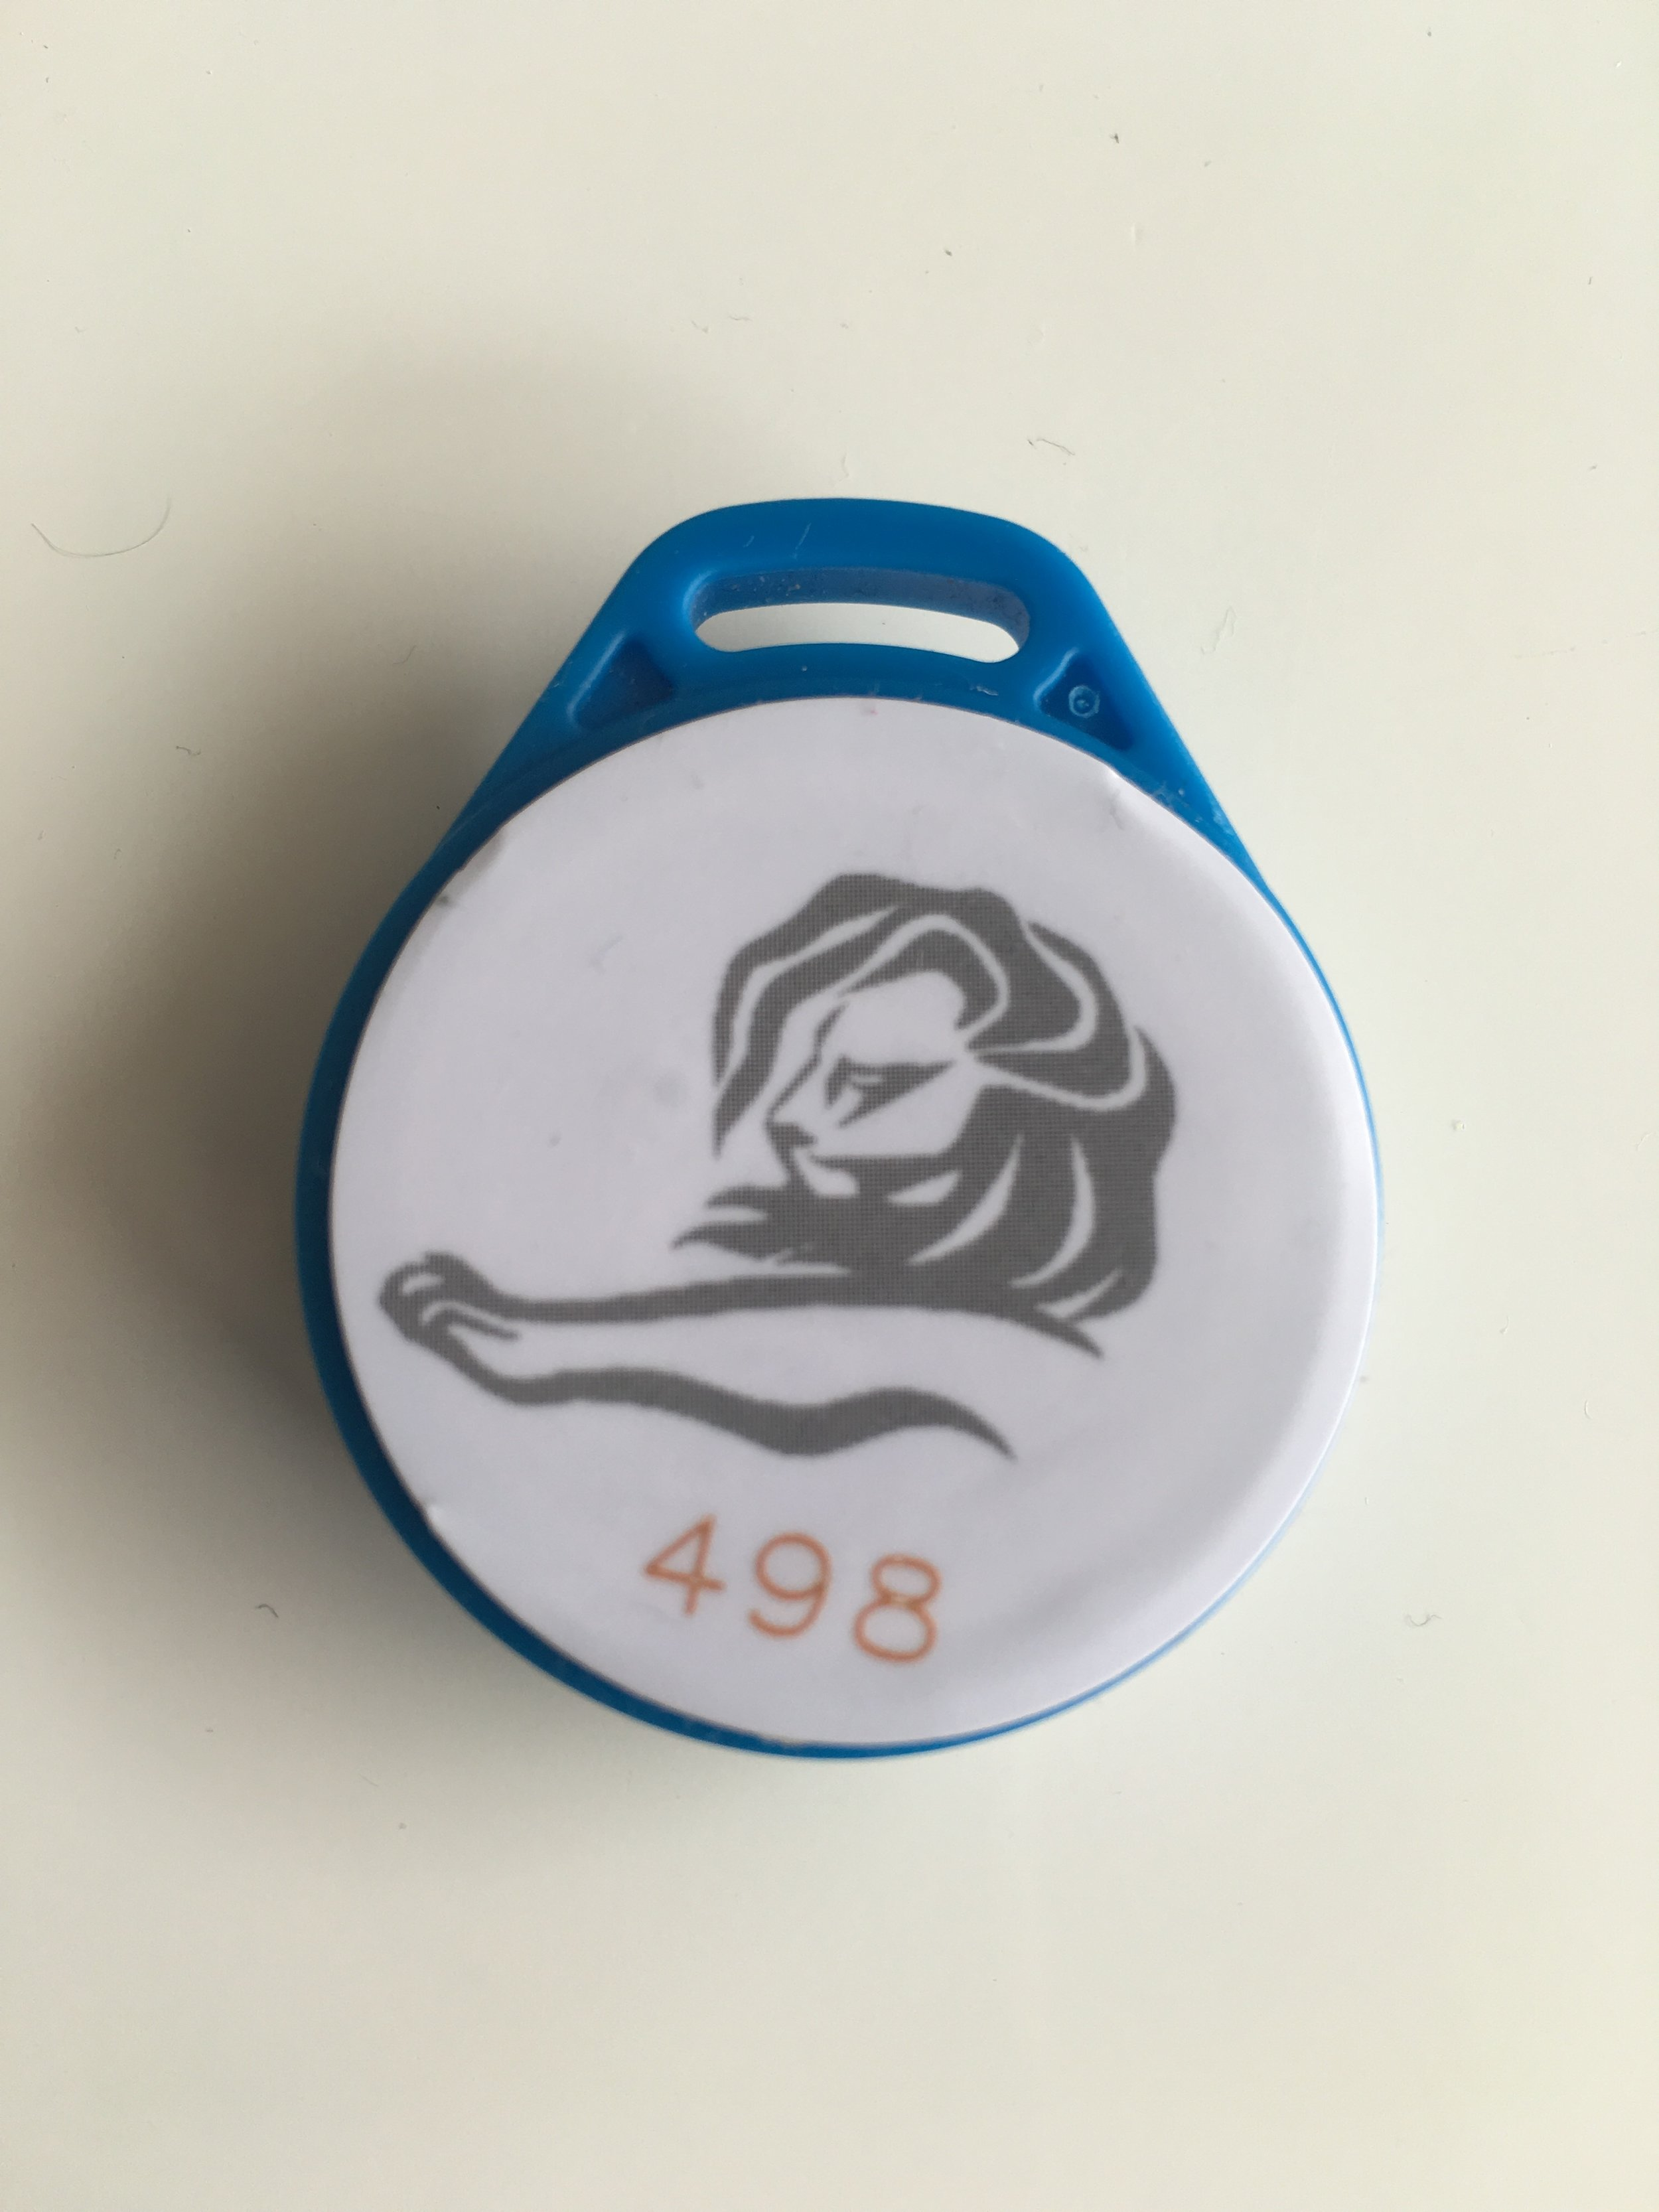 Cannes Lions ibeacon